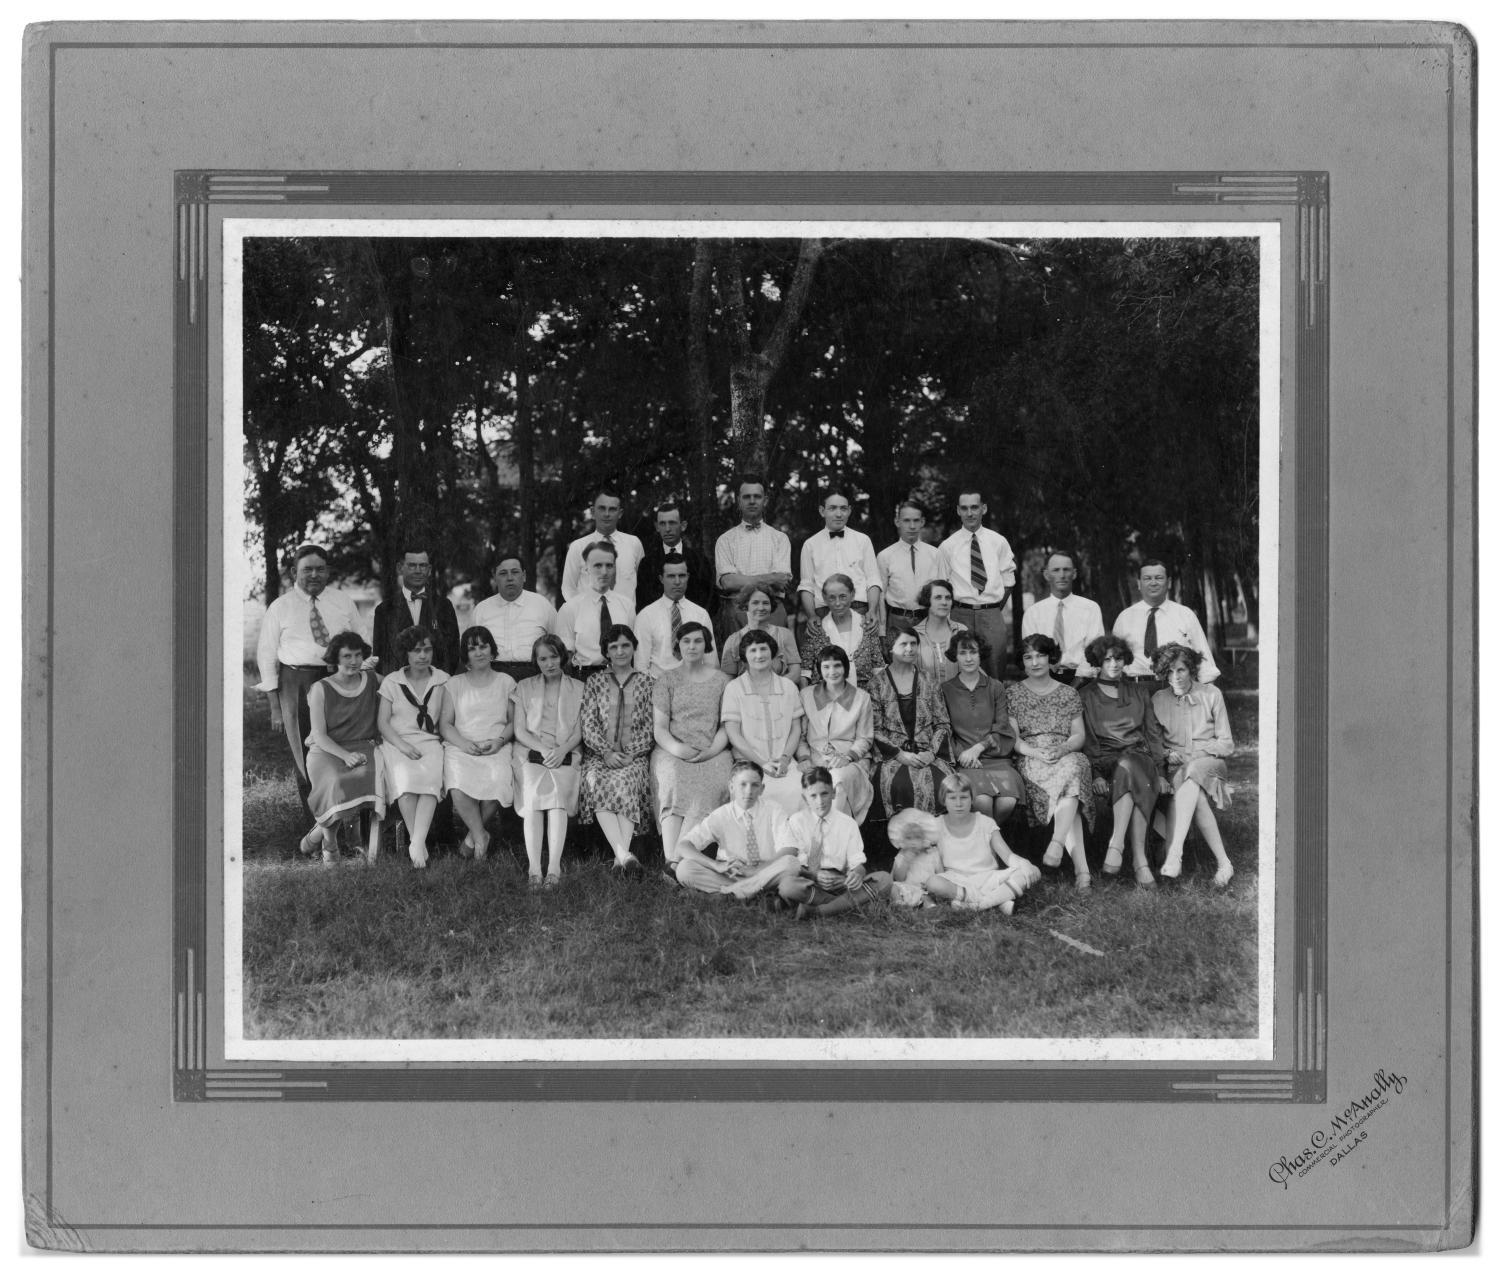 Harben - Spotts Company, Harbens Drug Store and Richardson Telephone Company Annual Picnic, Photograph of a group portrait at the Harben-Spotts Company annual picnic at Kidd Springs. The picnic involved Harbens Drug Store and Richardson Telephone Company. The men, women, and children are identified as (seated on ground, first row) Earle Harben, Ray Chap Harben, Marjorie Mae Meyer, Lewis, (second row) Mrs. M. M. Meyer, Miss Florence Ingle, Mrs. Walter Williams, Miss Ethel Christopherson, Mrs. P. E. Riley, Miss Stella Moody, Mrs. Sam P. Harben, Mrs. Doyal Taylor, Mrs. Sherwood Spotts, Miss Alma Ballard, Miss Viola Anderton, Mrs. A. O. Very, Mrs. Chester Bethel, (third row) Sam P. Harben, Dr. P. E. Riley, Jess Harben, A. O. Very, Chester Bethel, Mrs. Walter Park, Mrs. R. P. Harben, Mrs. Jess Harben, Walter Park, Sherwood Spotts, (fourth row) Doyal Taylor, Walter Williams, J. D. McNeil, Carson Harben, Lester Meyer, and M. M. Meyer.,